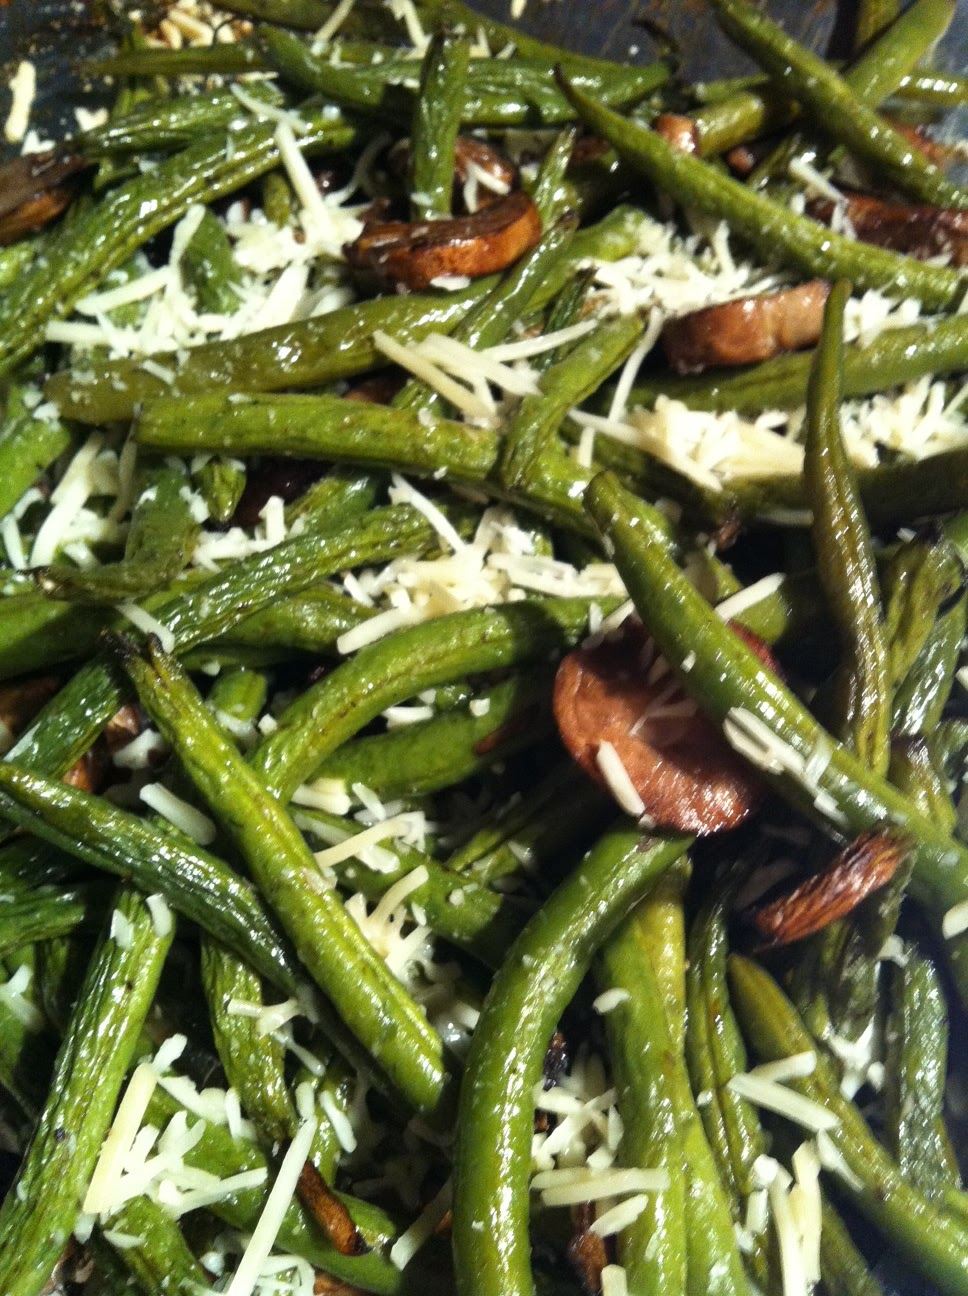 Pretty Penny: Balsamic Roasted Green Beans, Mushrooms and Parmesan